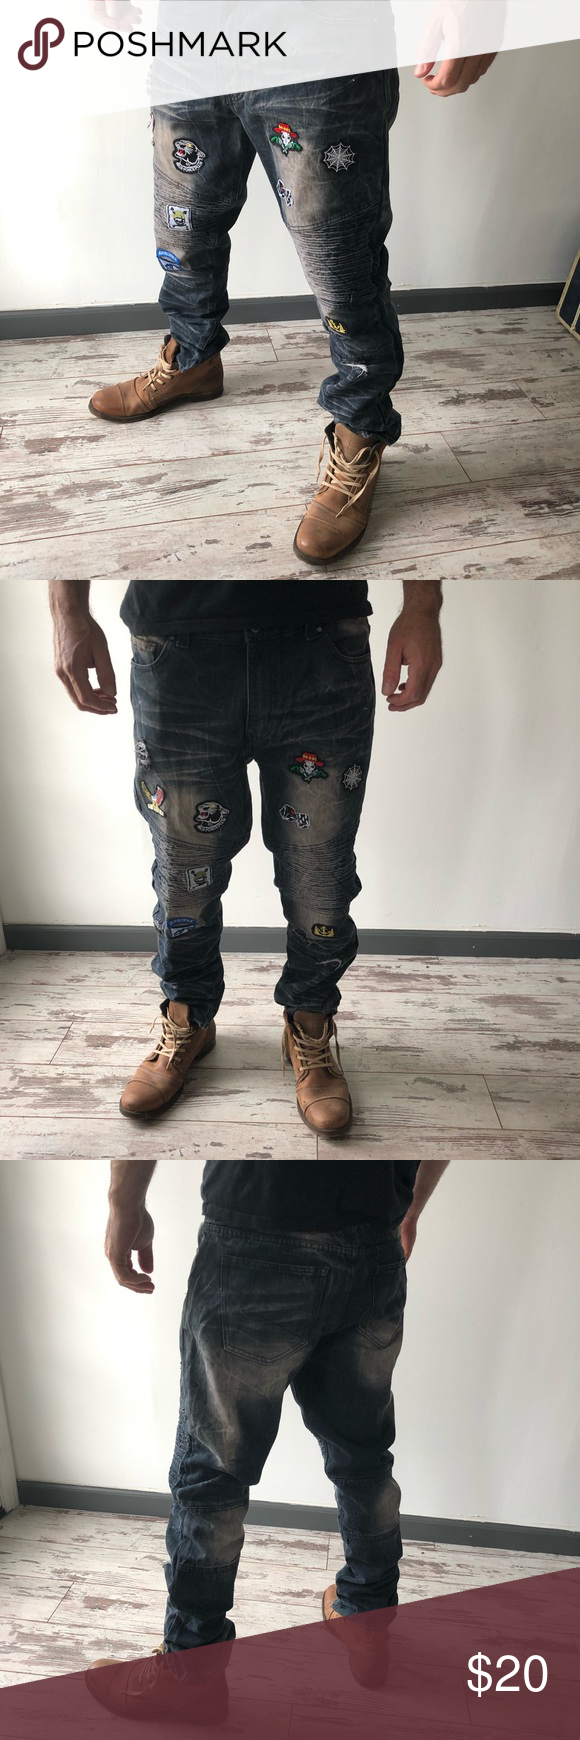 Steve's Jeans Men's distressed jeans with patches Steve's Jeans men's di...